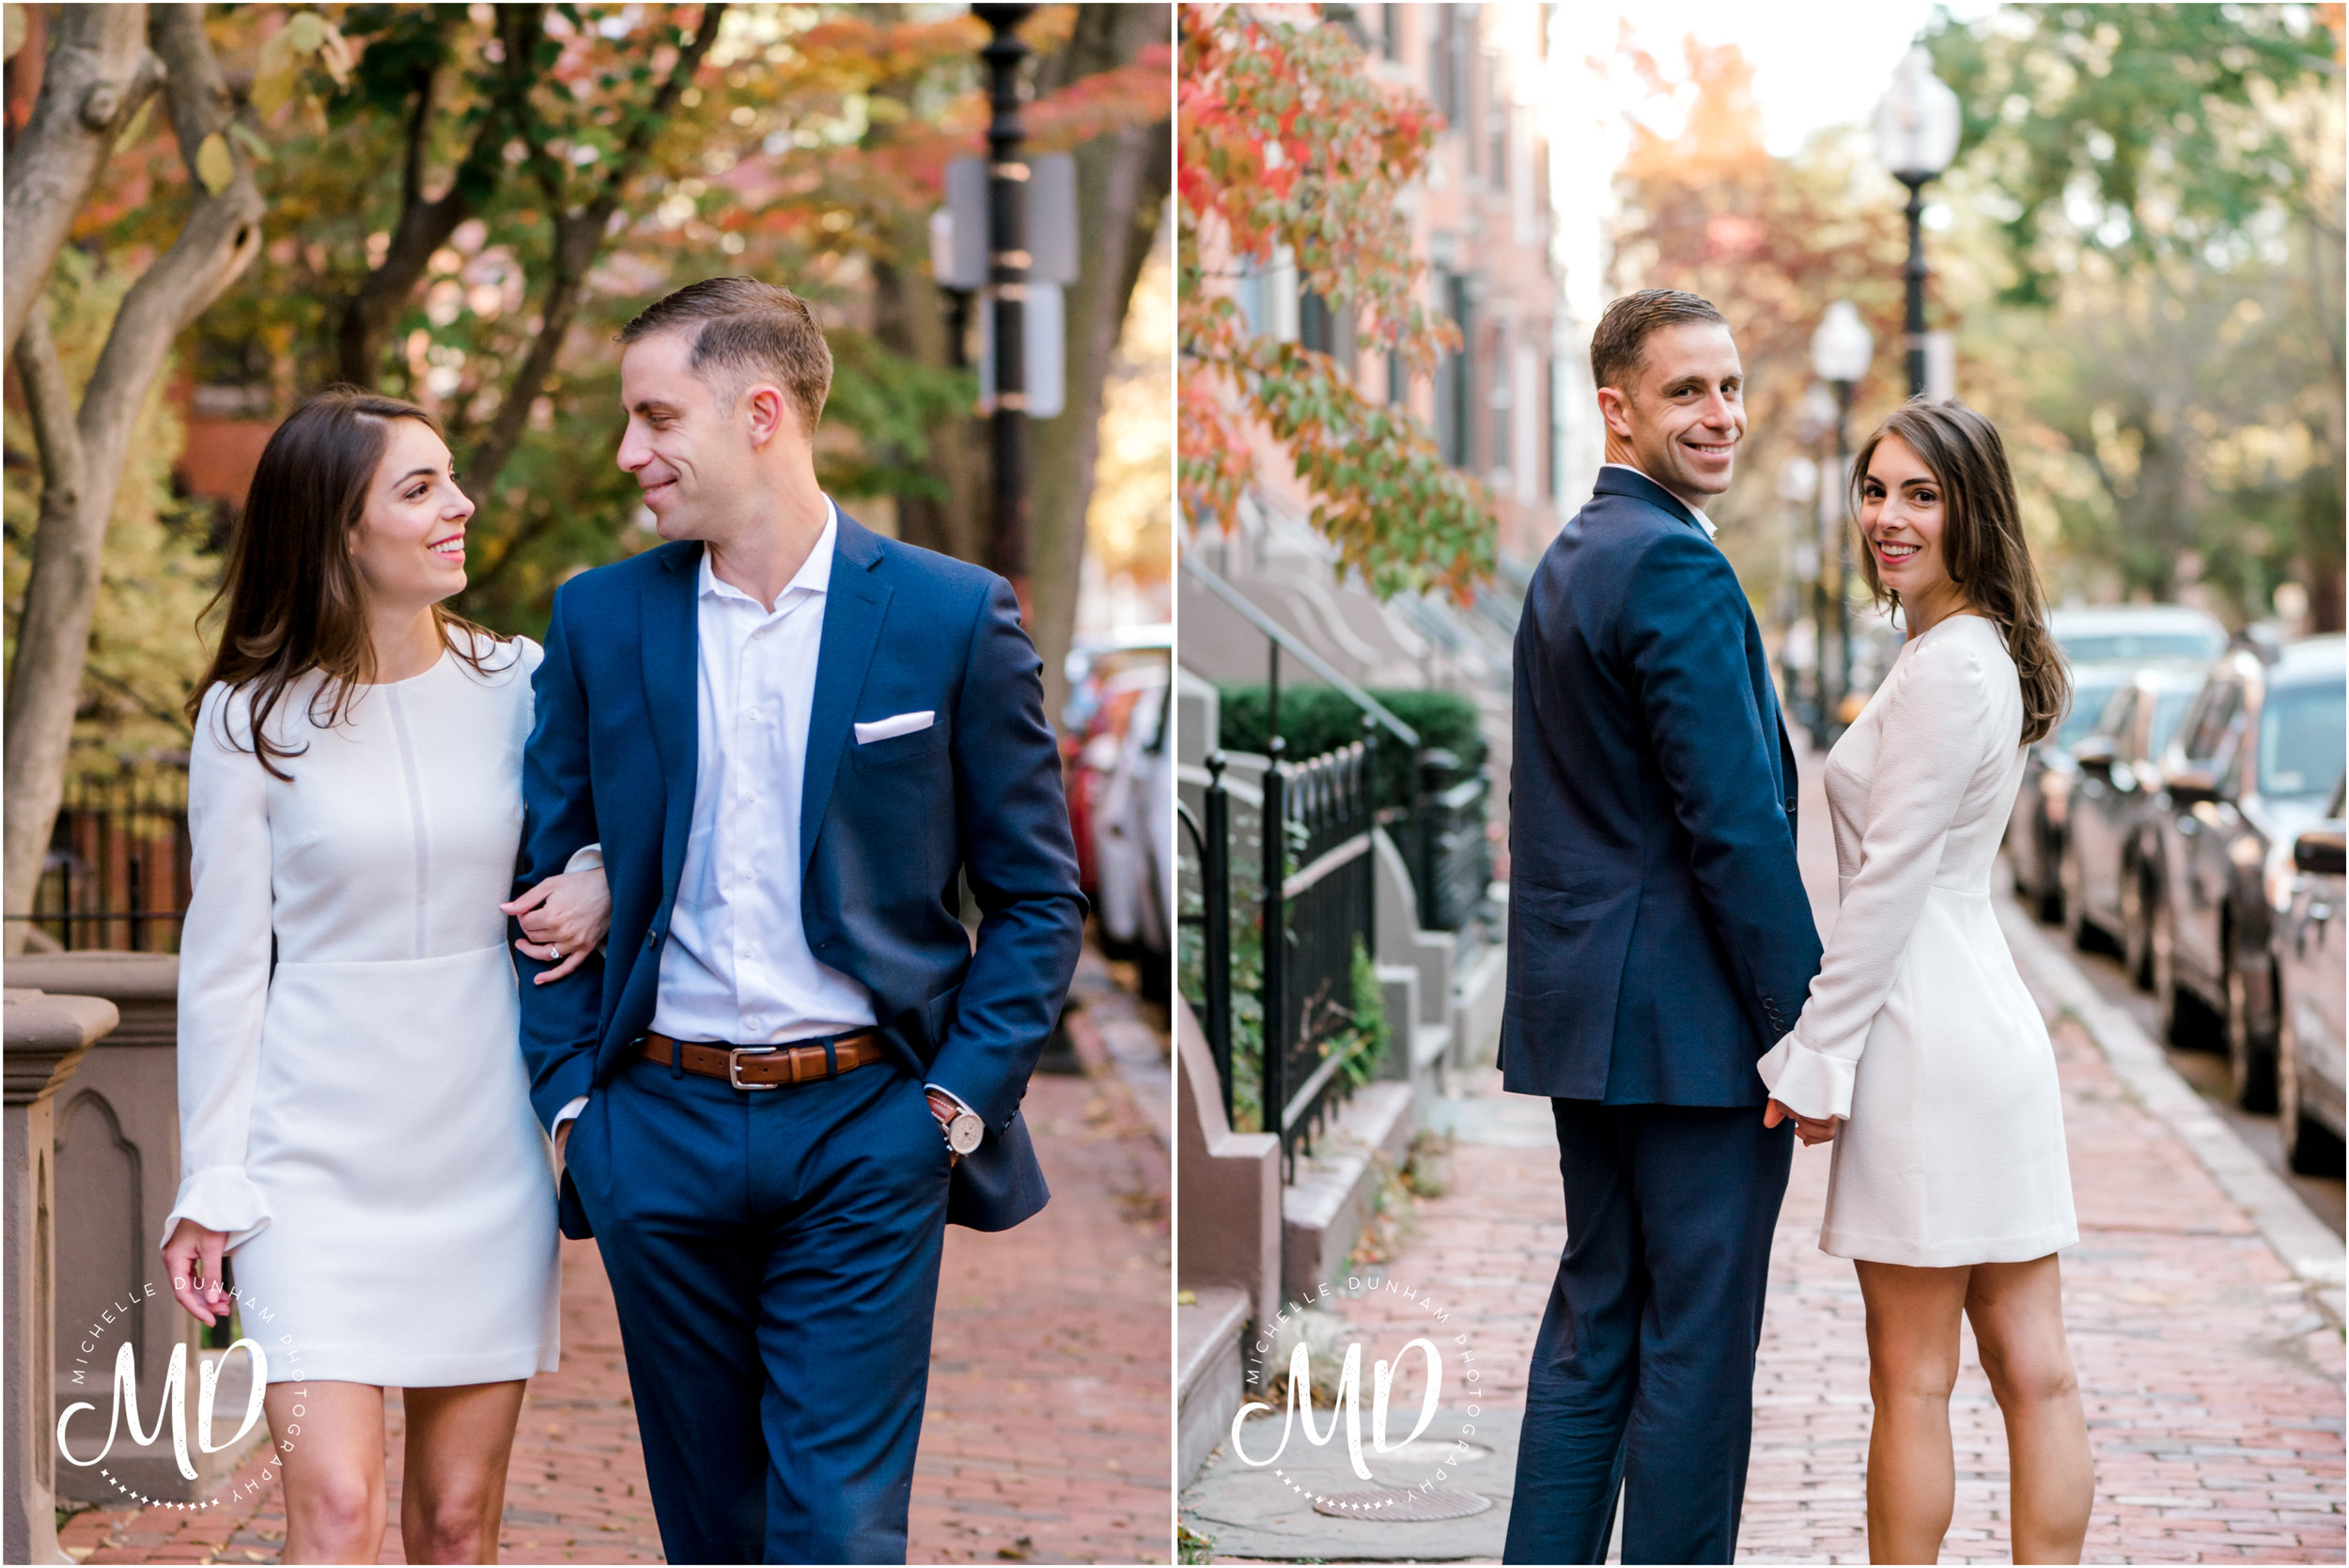 Michelle-Dunham-Photography-Engagement-South-End-Boston-8.jpg